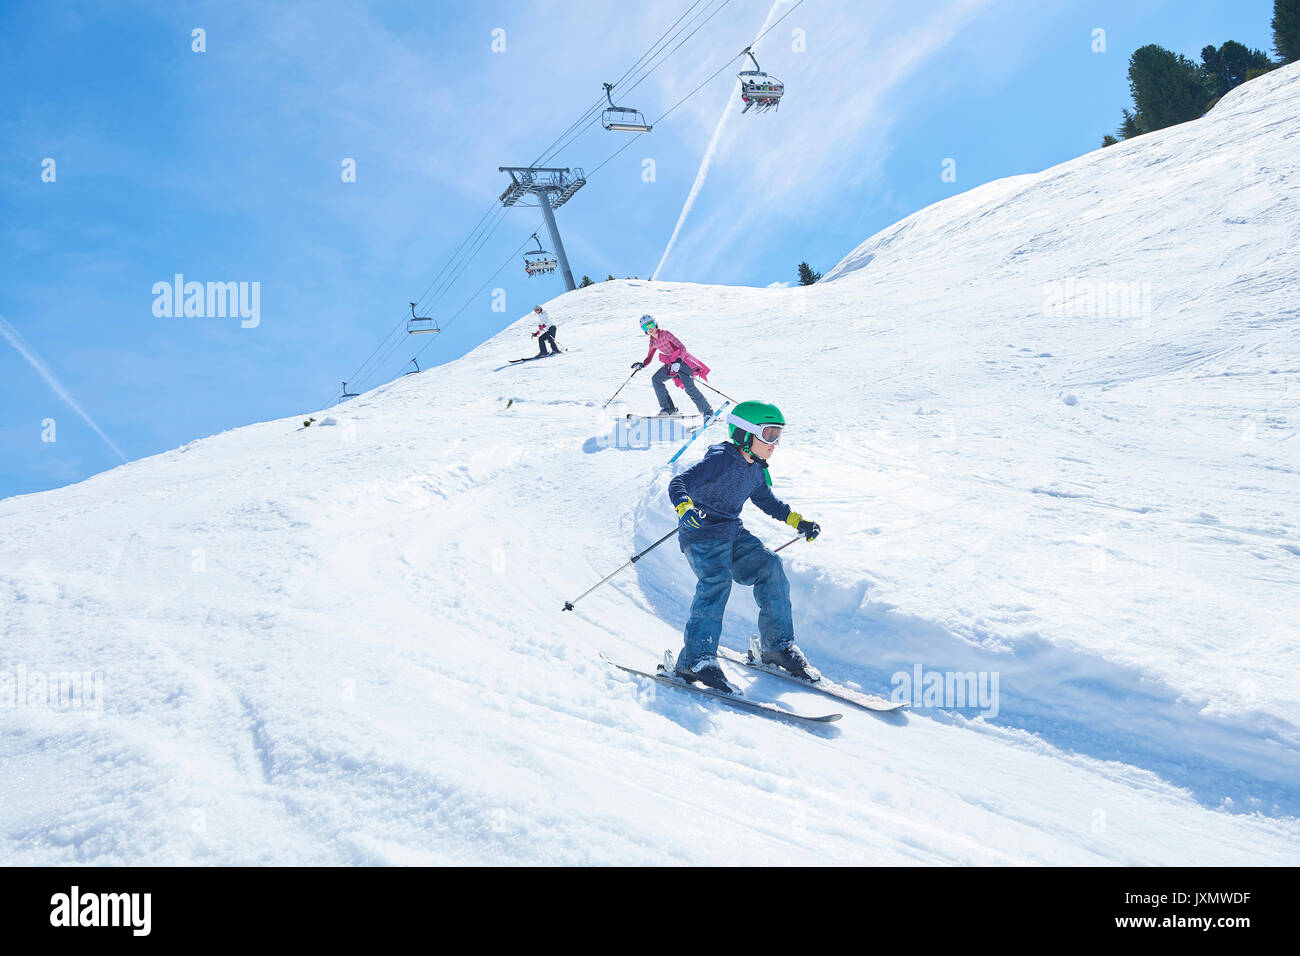 Family on skiing holiday, Hintertux, Tirol, Austria - Stock Image